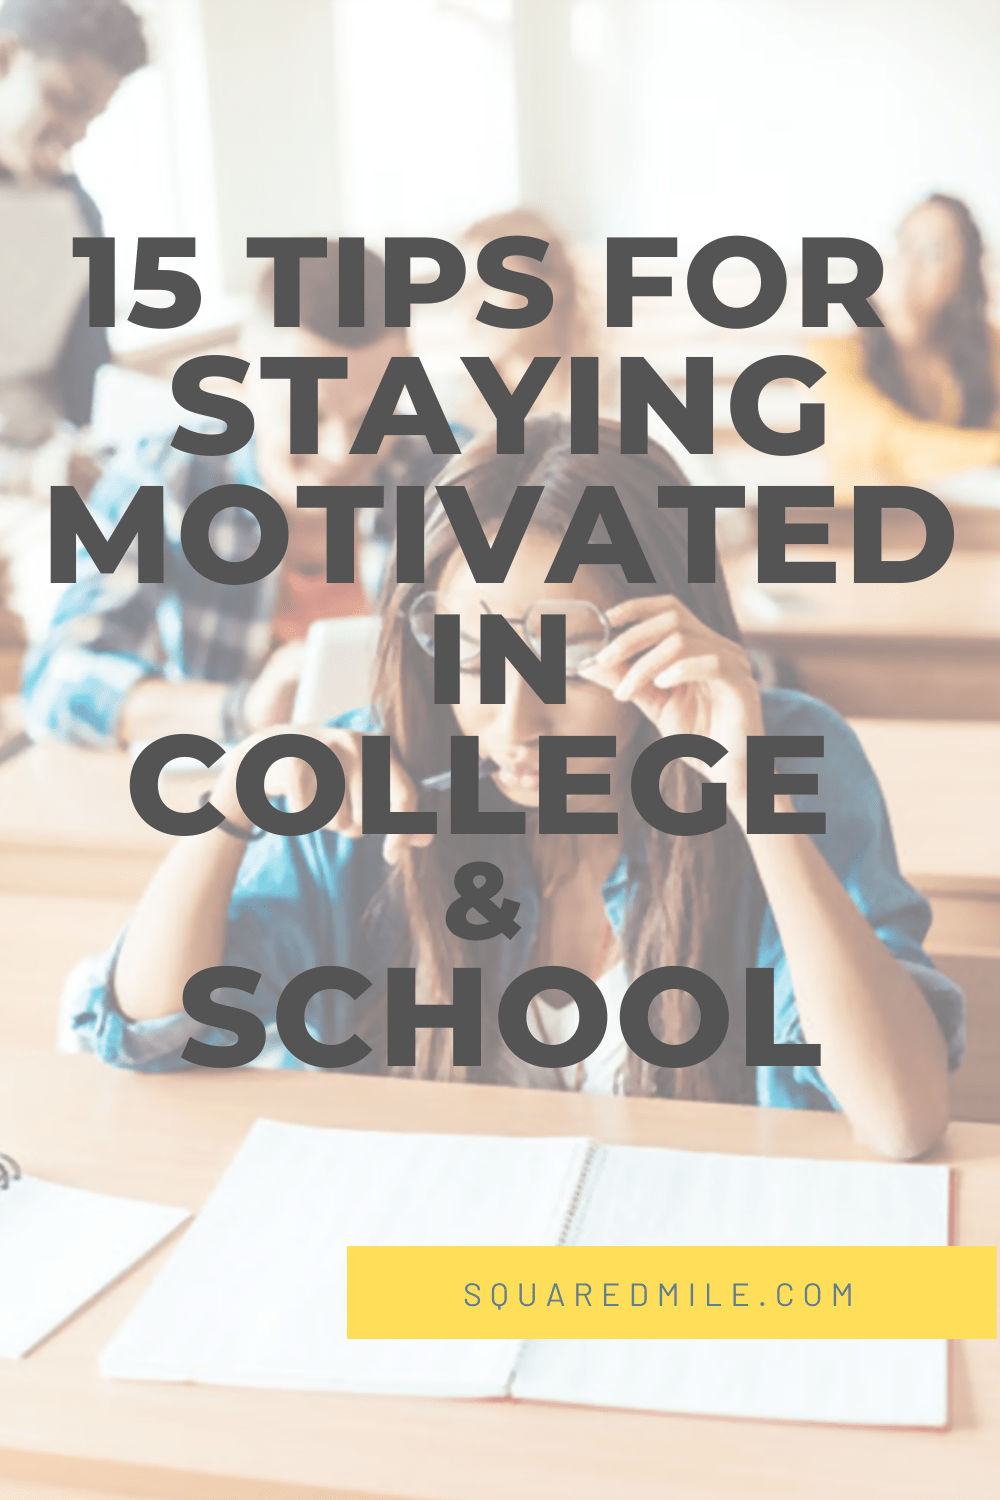 15 Tips for staying motivated in college and school